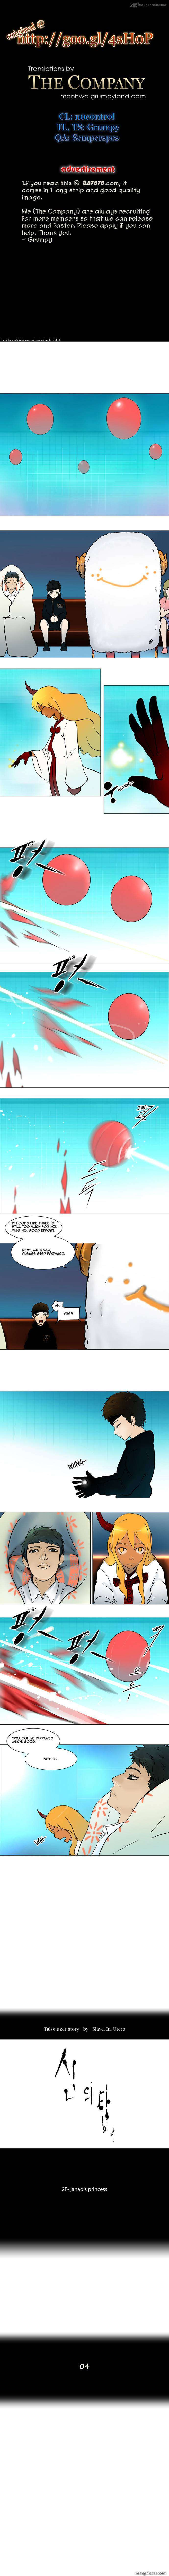 Tower of God 34 Page 1